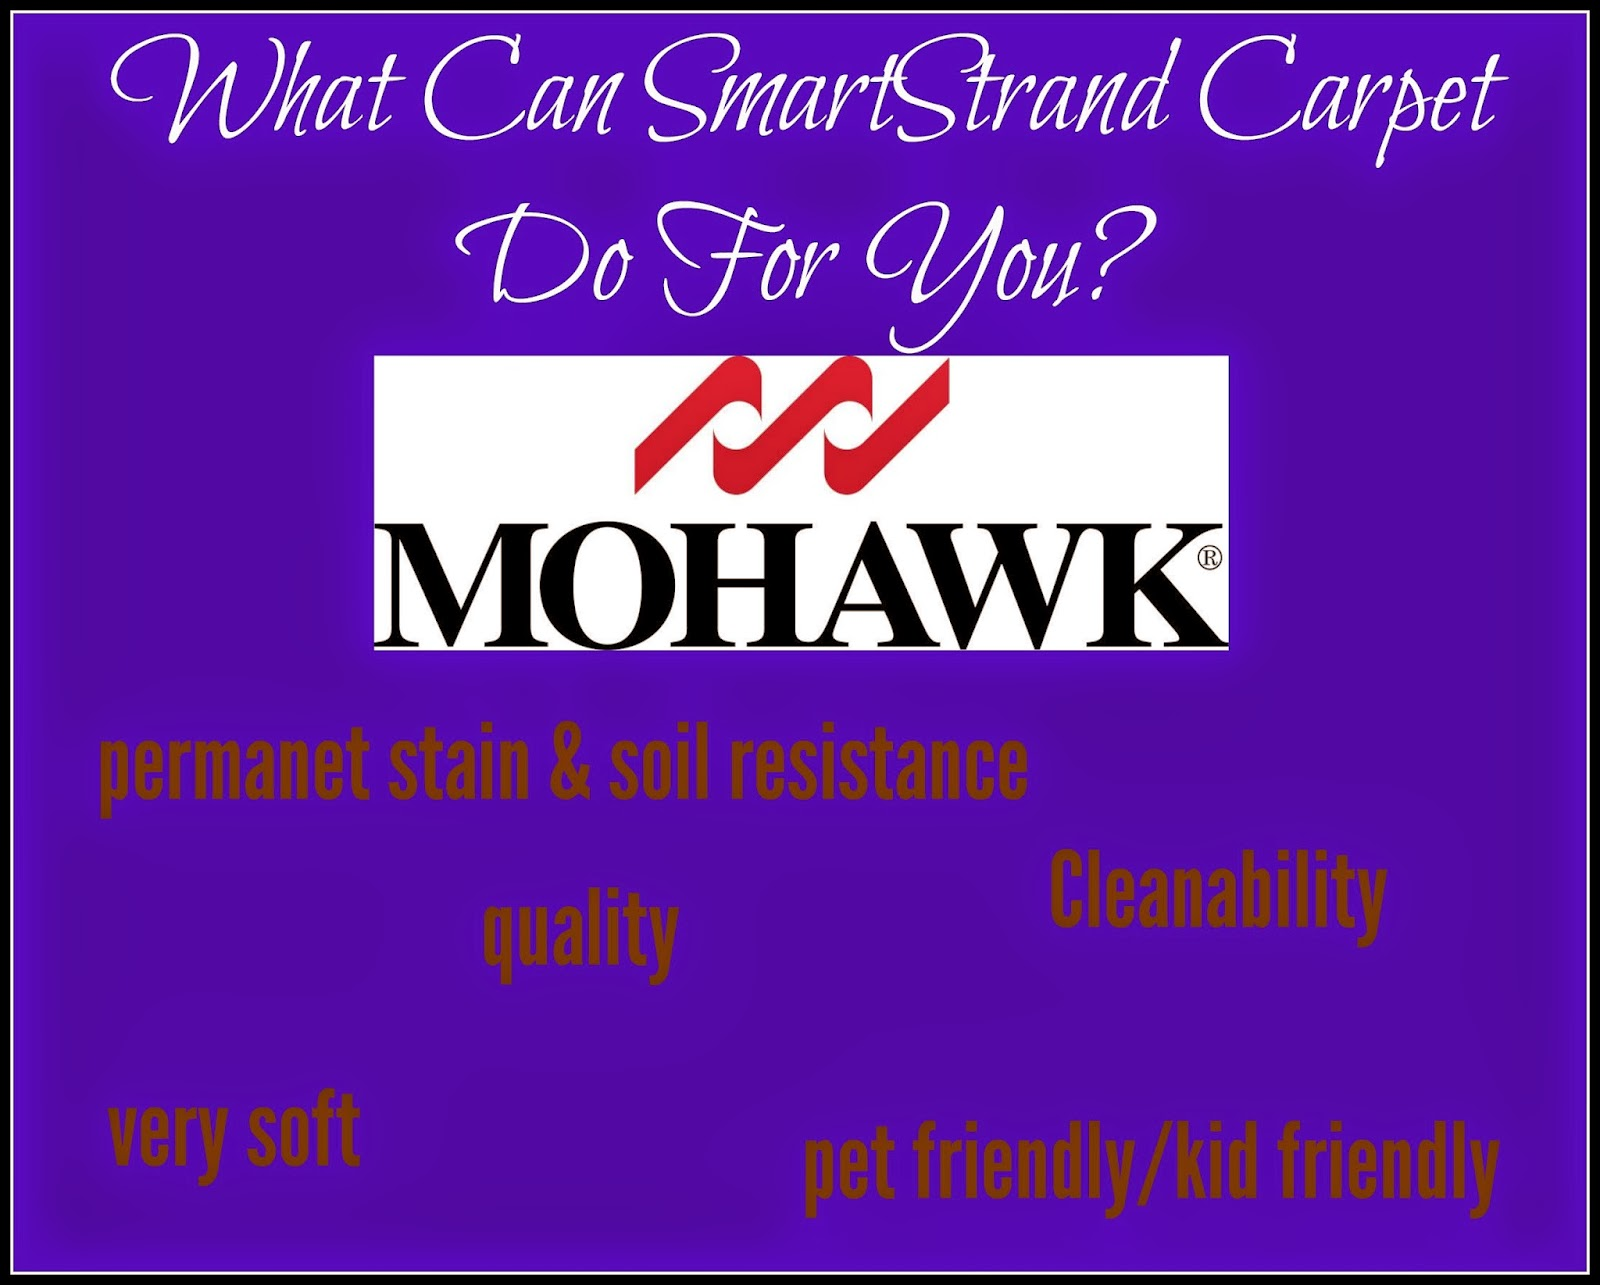 Carpet, SmartStrand, Carpeting, Flooring, Mohawk, SmartCushion, Mohawk Carpet, Mohawk Carpet (Prox filter), Mohawk Flooring, Mohawk Flooring (Prox FIlter), Mohawk Smartstrand, Mohawk Smartstrand Silk, SmartCushion